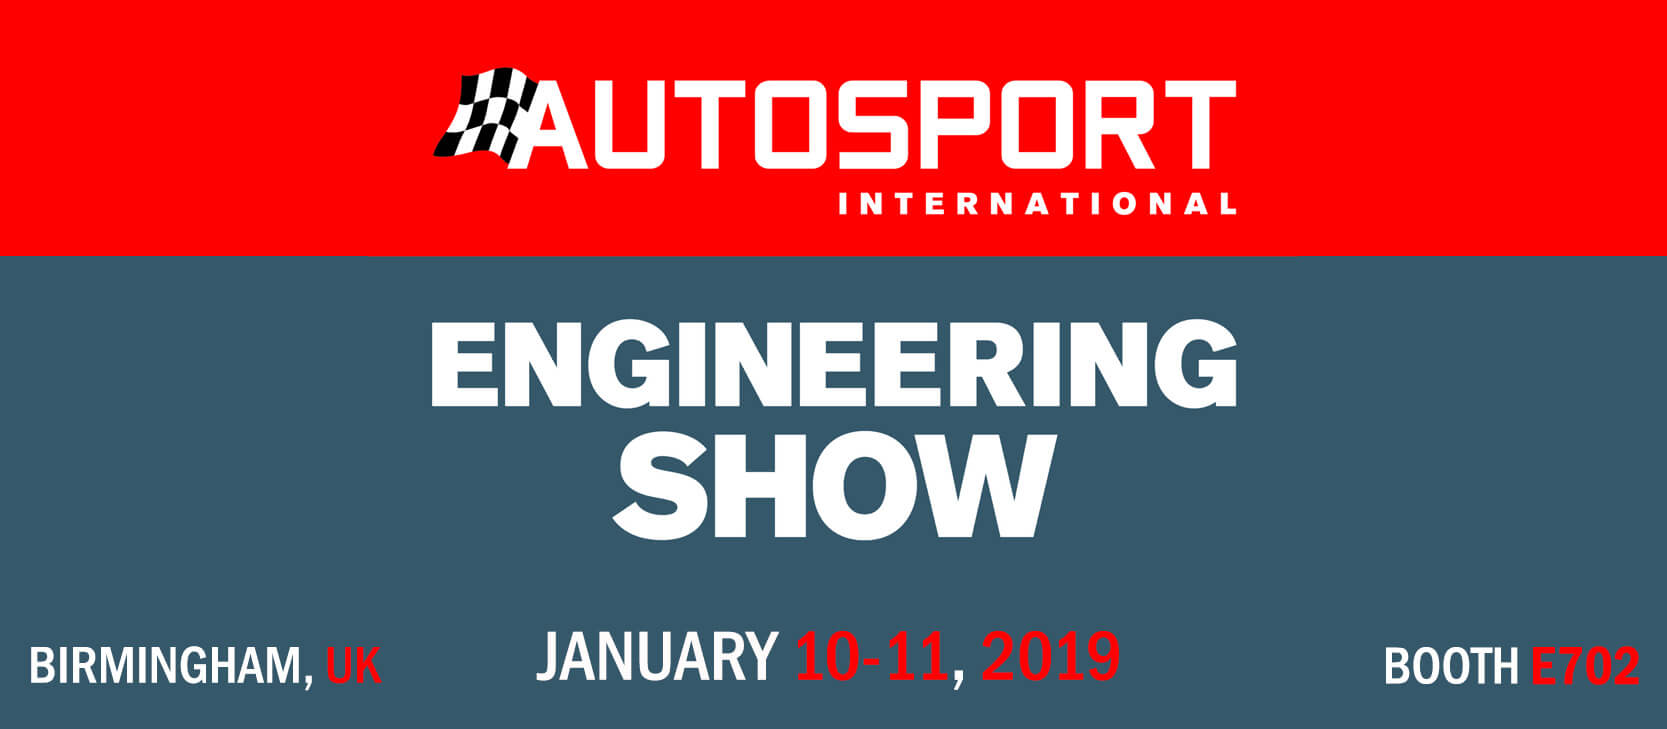 Autosport International 2018, Booth E720